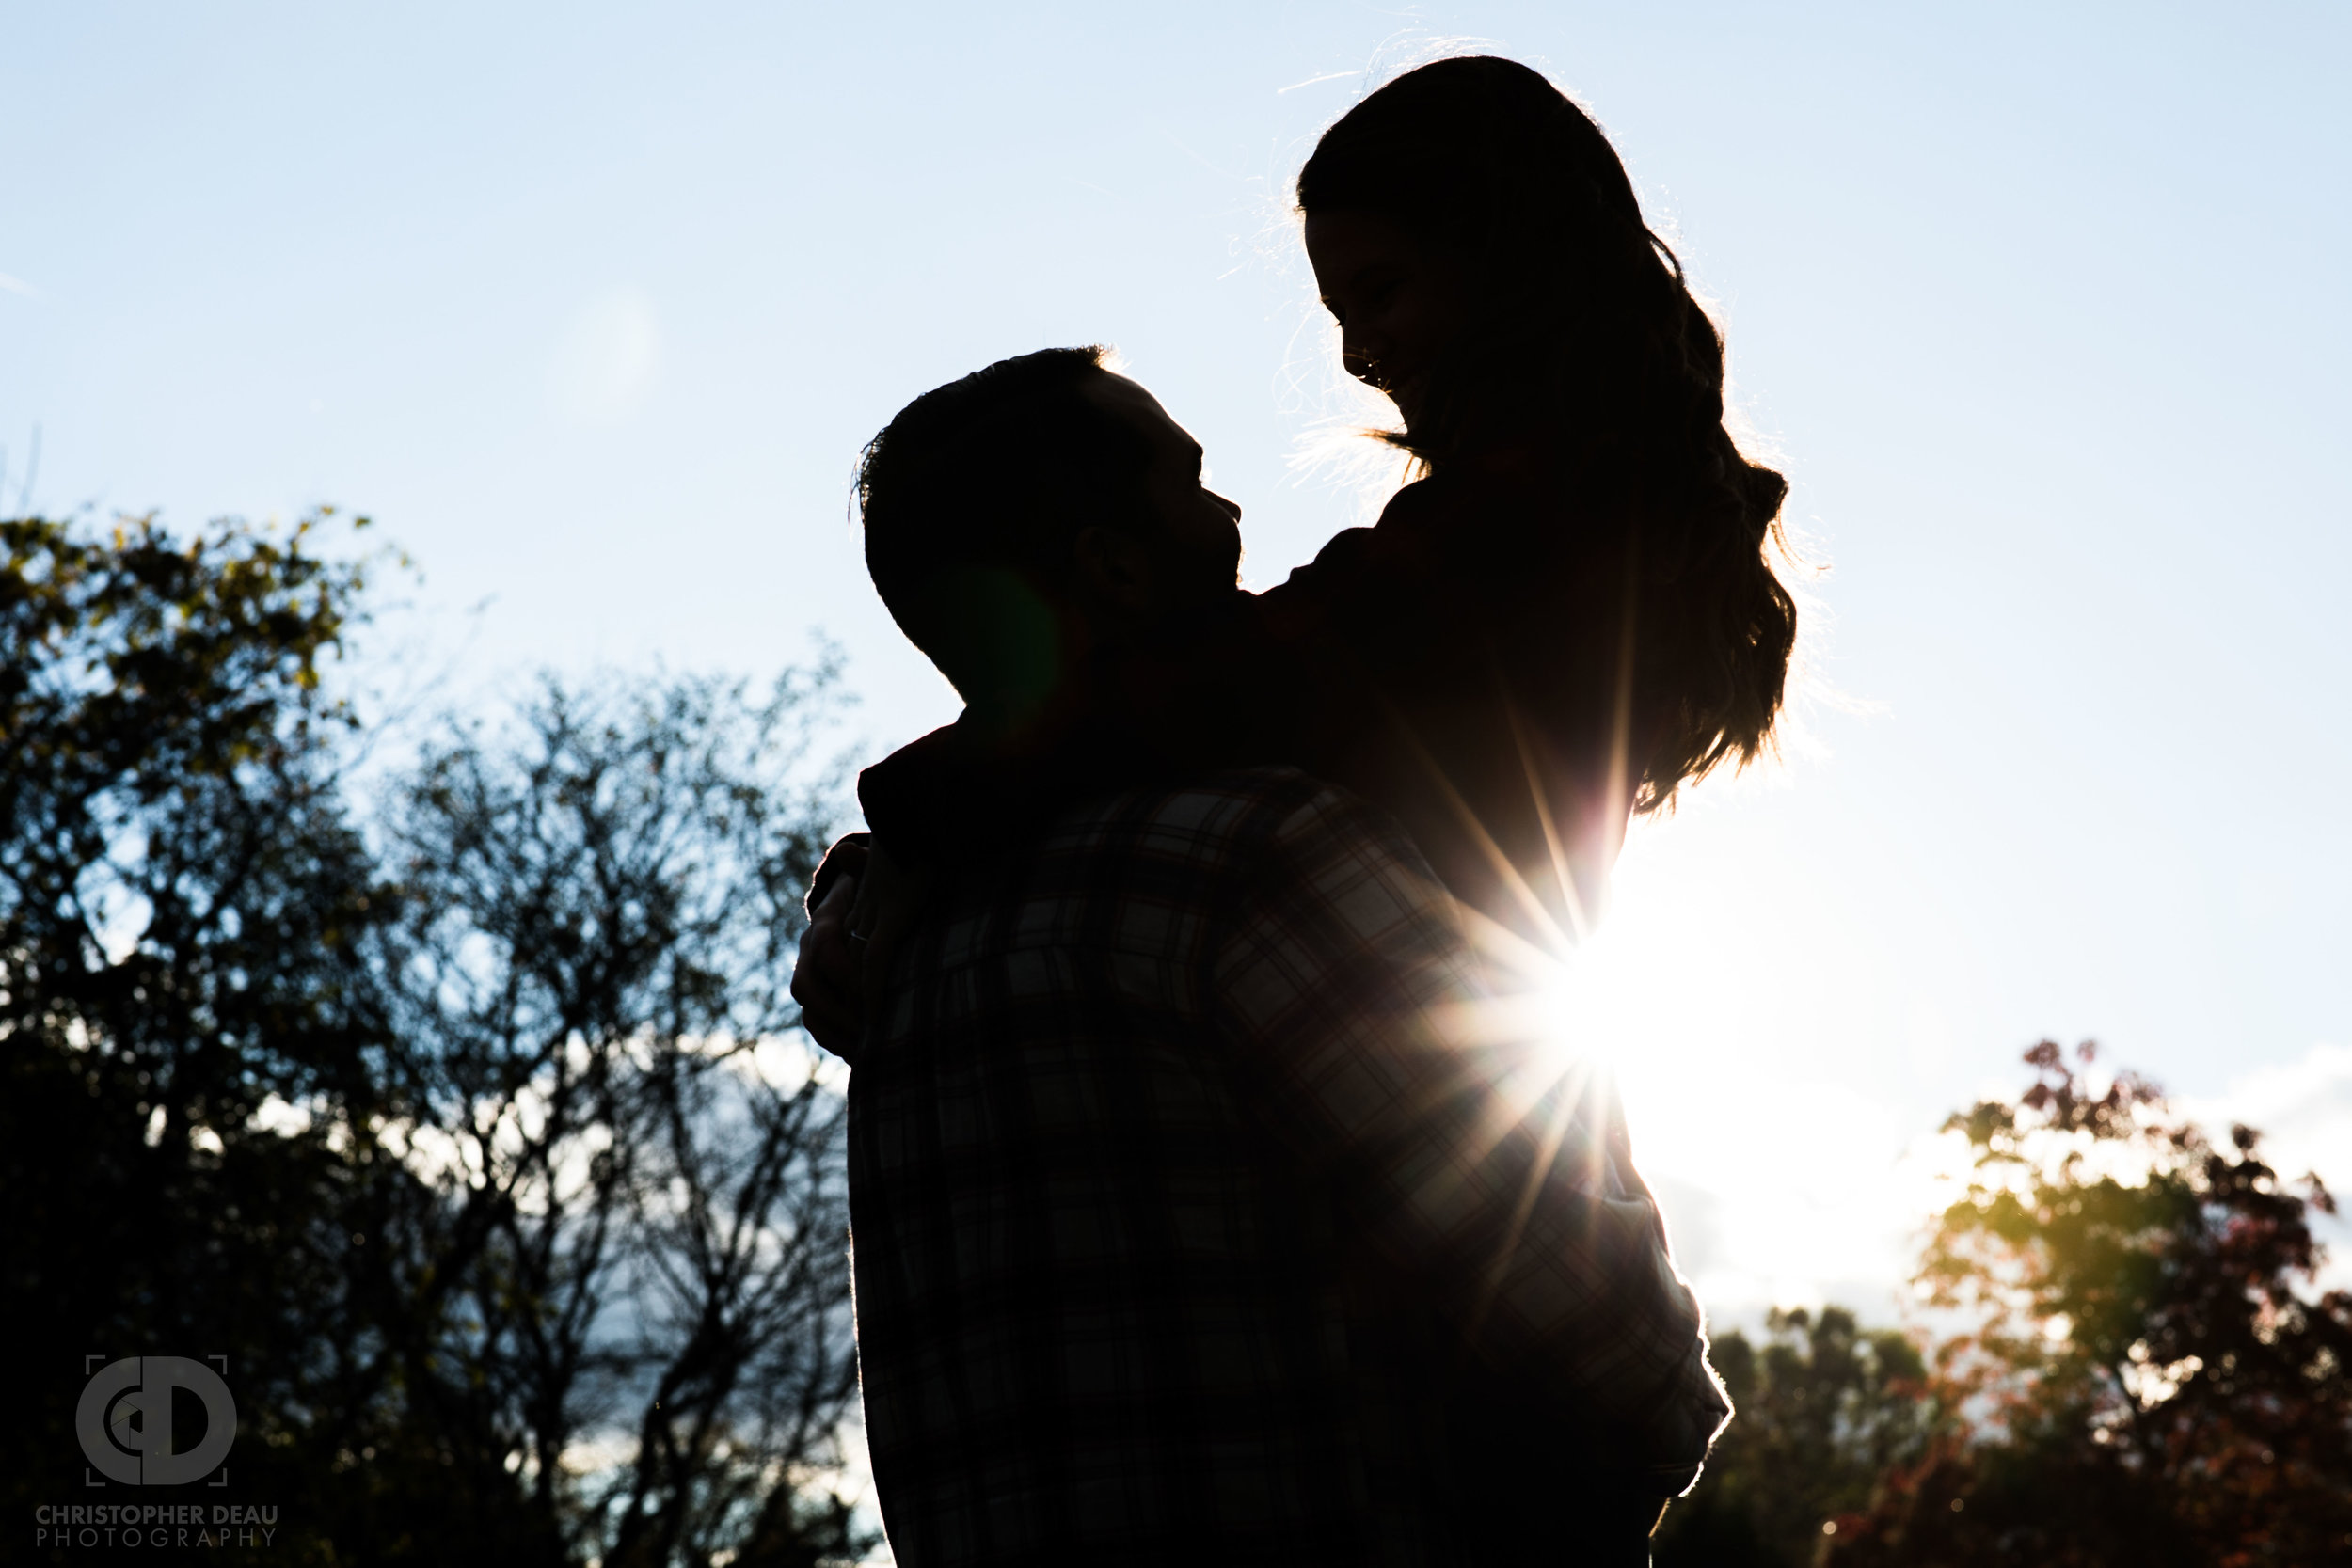 Silhouette of man lifting woman with the sun glaring behind